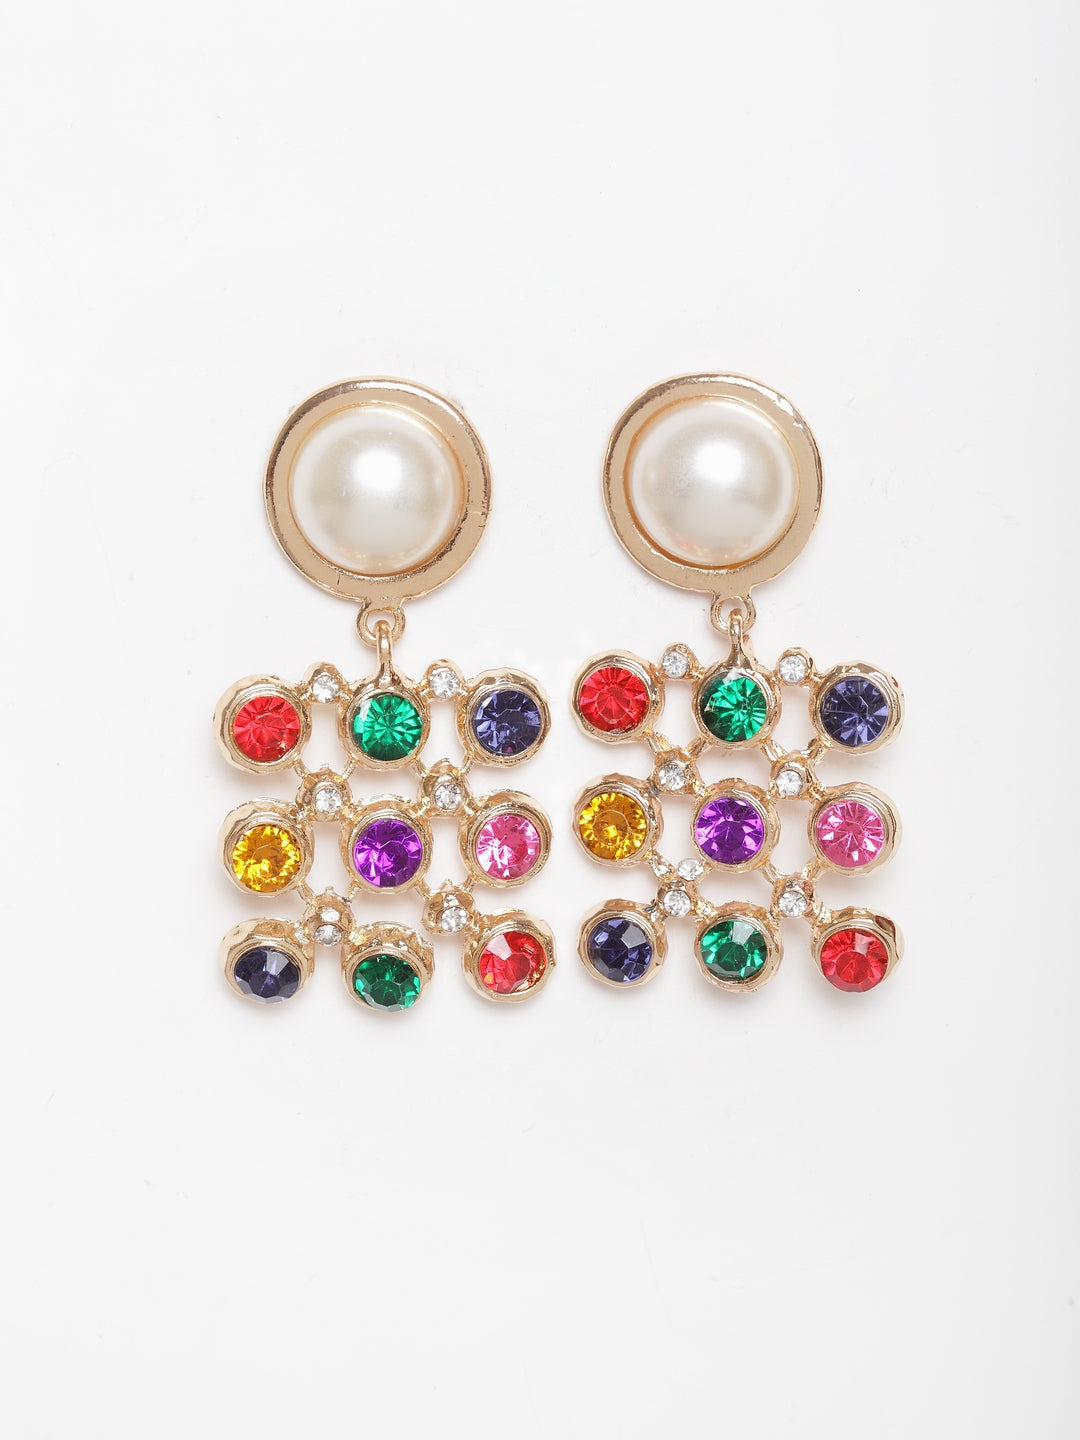 Avant-Garde Paris Vintage Crystal Pearl Square Statement Drop Earrings